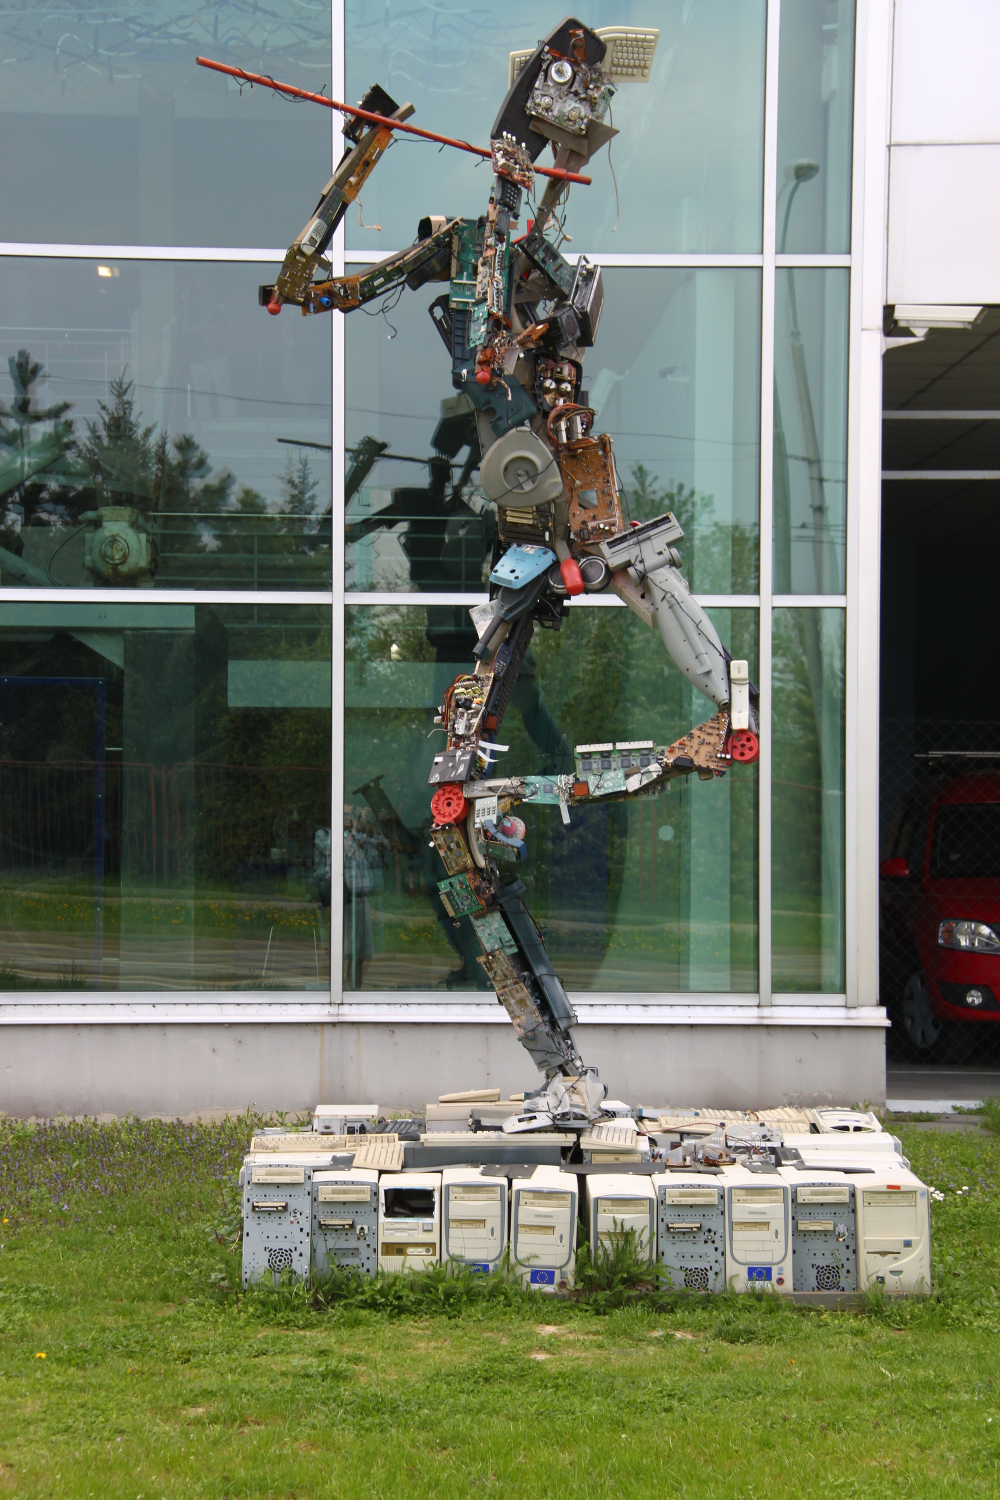 Robot, The Technical Museum in Brno